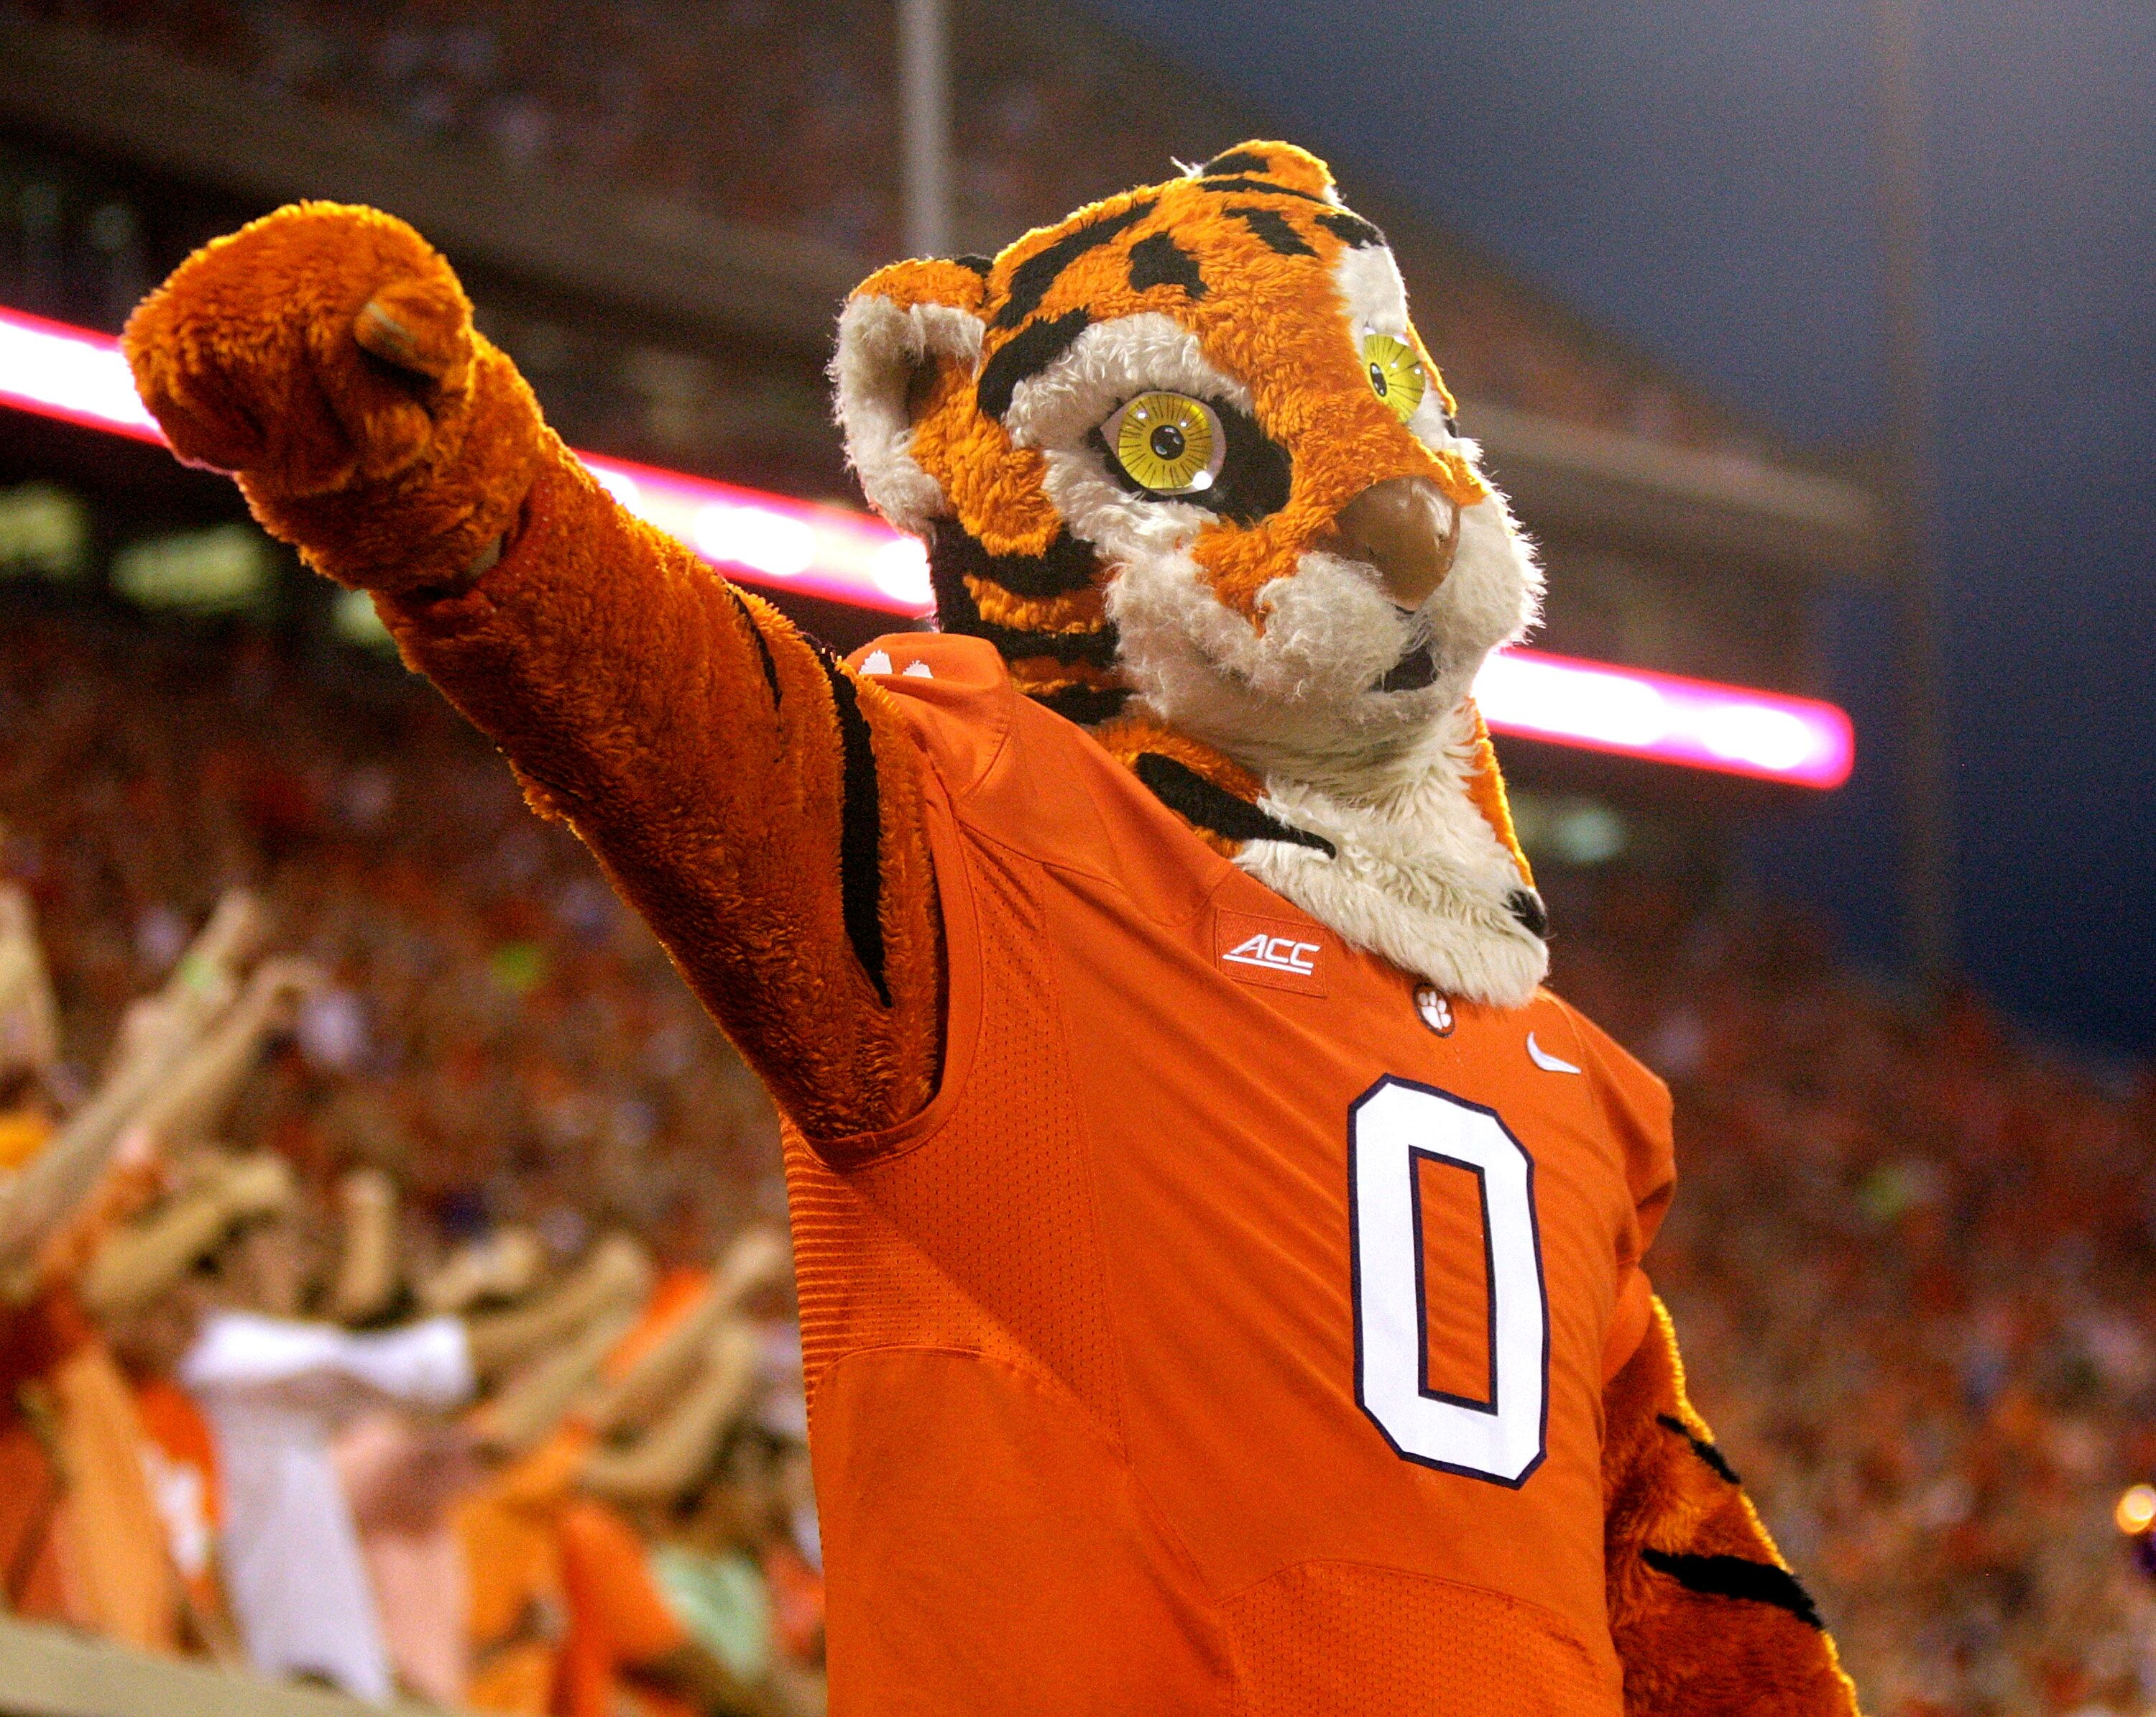 Clemson Football: How many pushups did the Tiger do vs ...